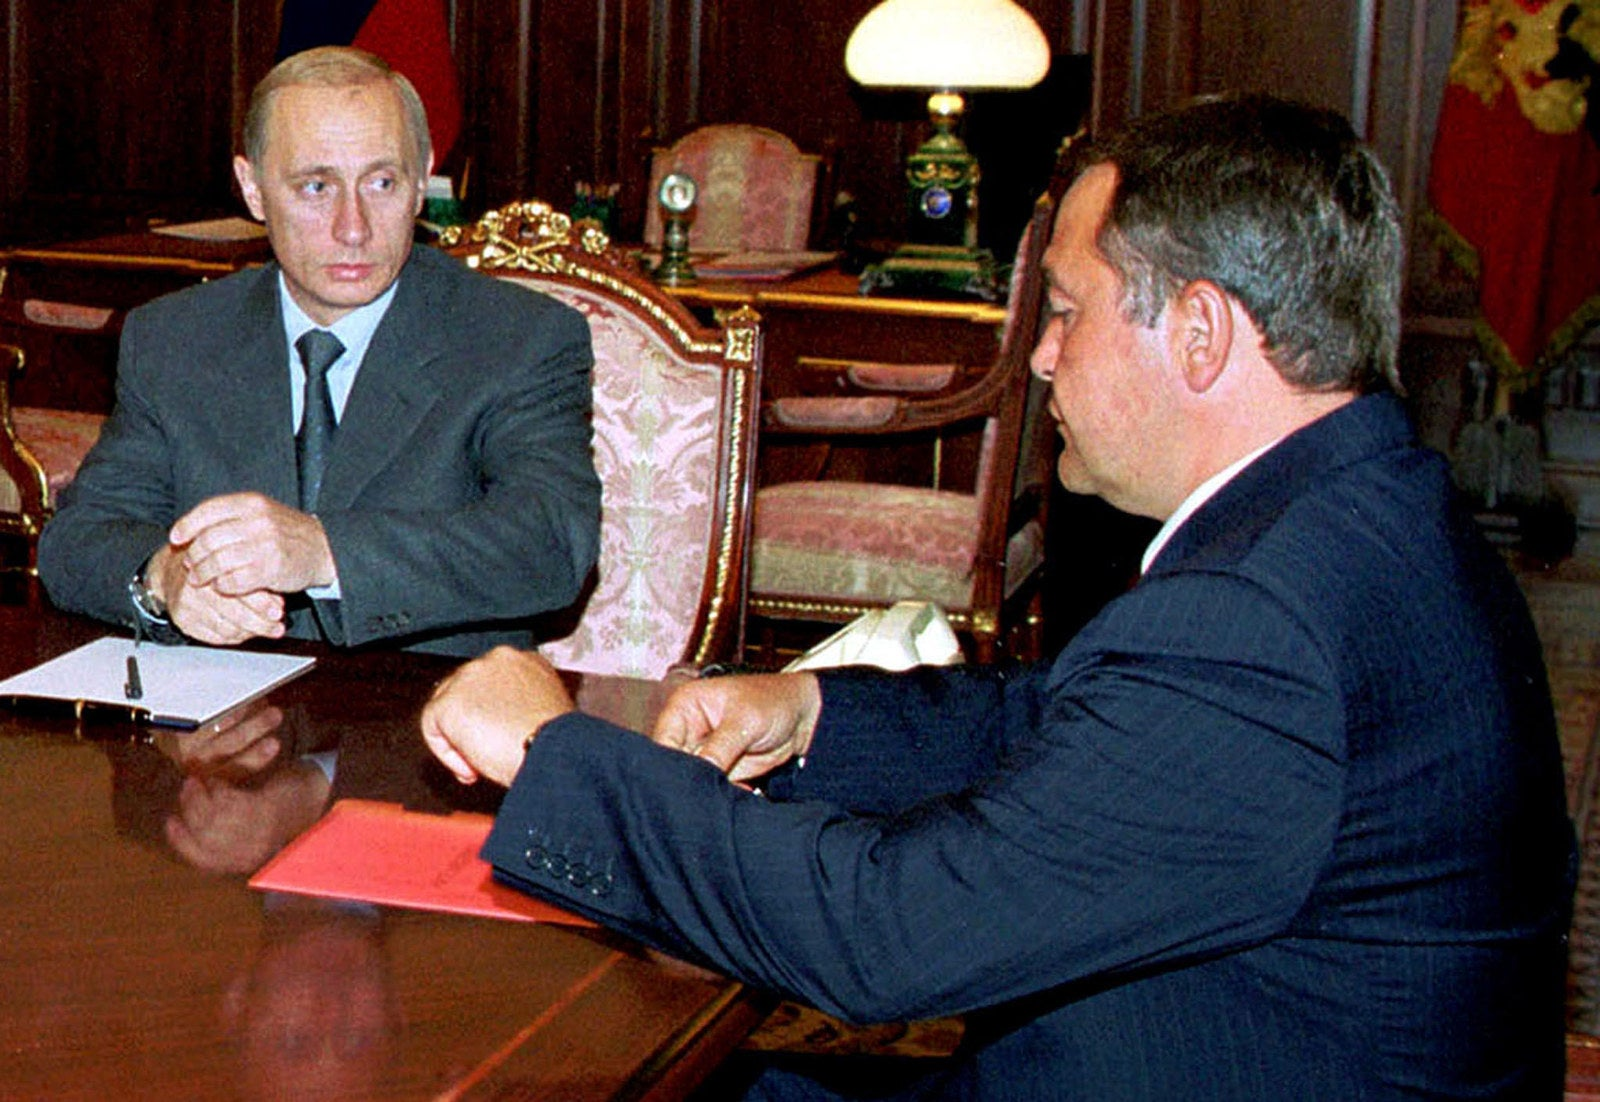 Vladimir Putin and Mikhail Lesin in the Kremlin.